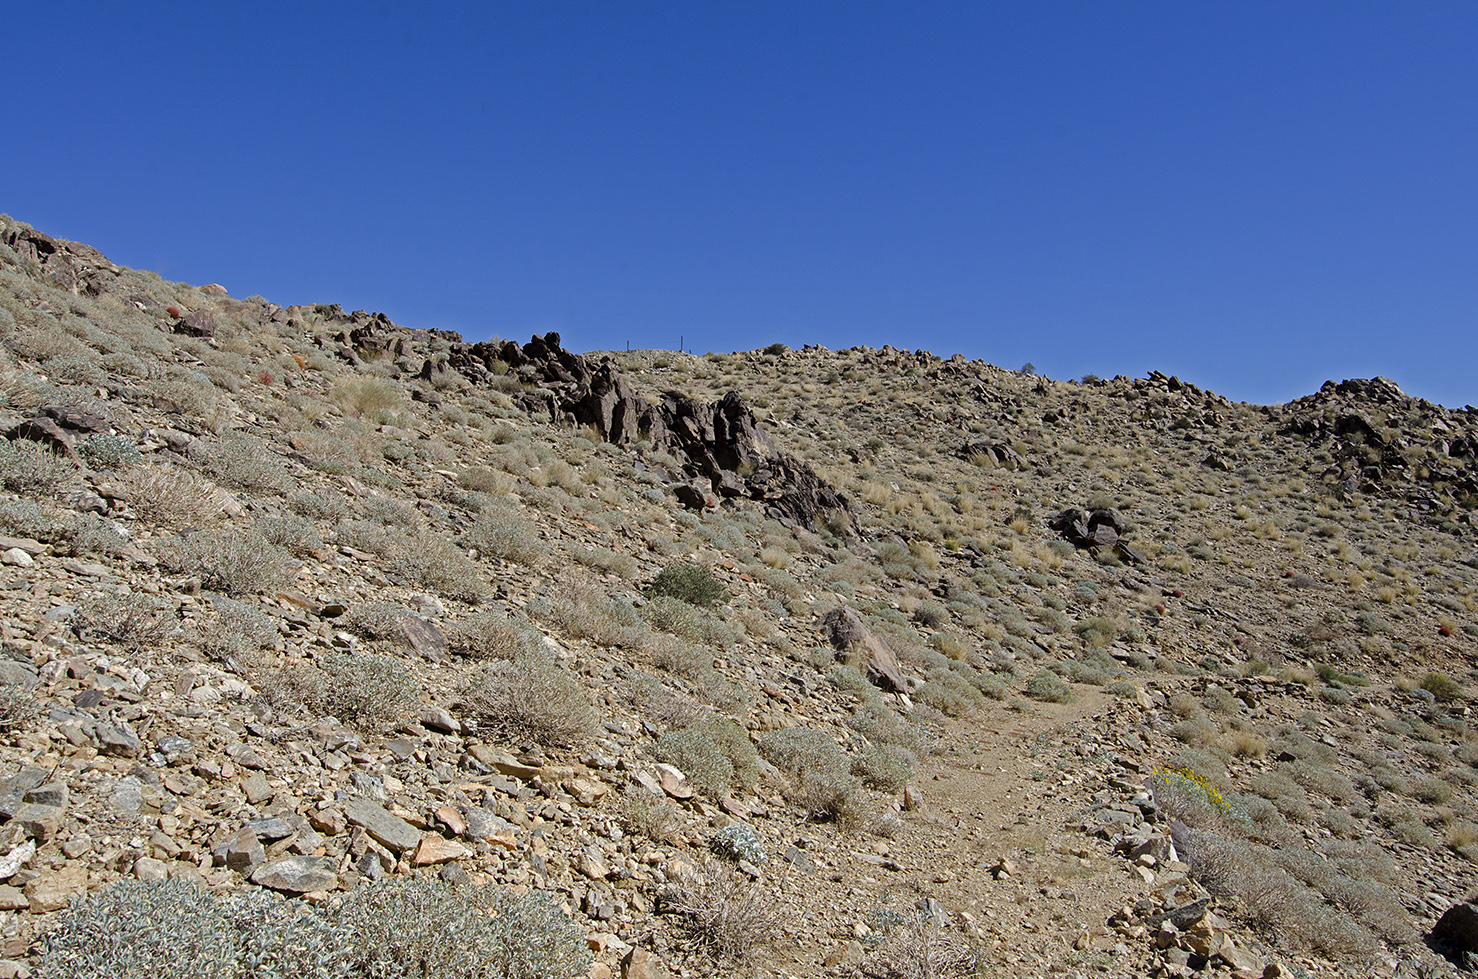 A short distance from the mine, I notice a fenced off shaft up on this rise and decide to investigate.